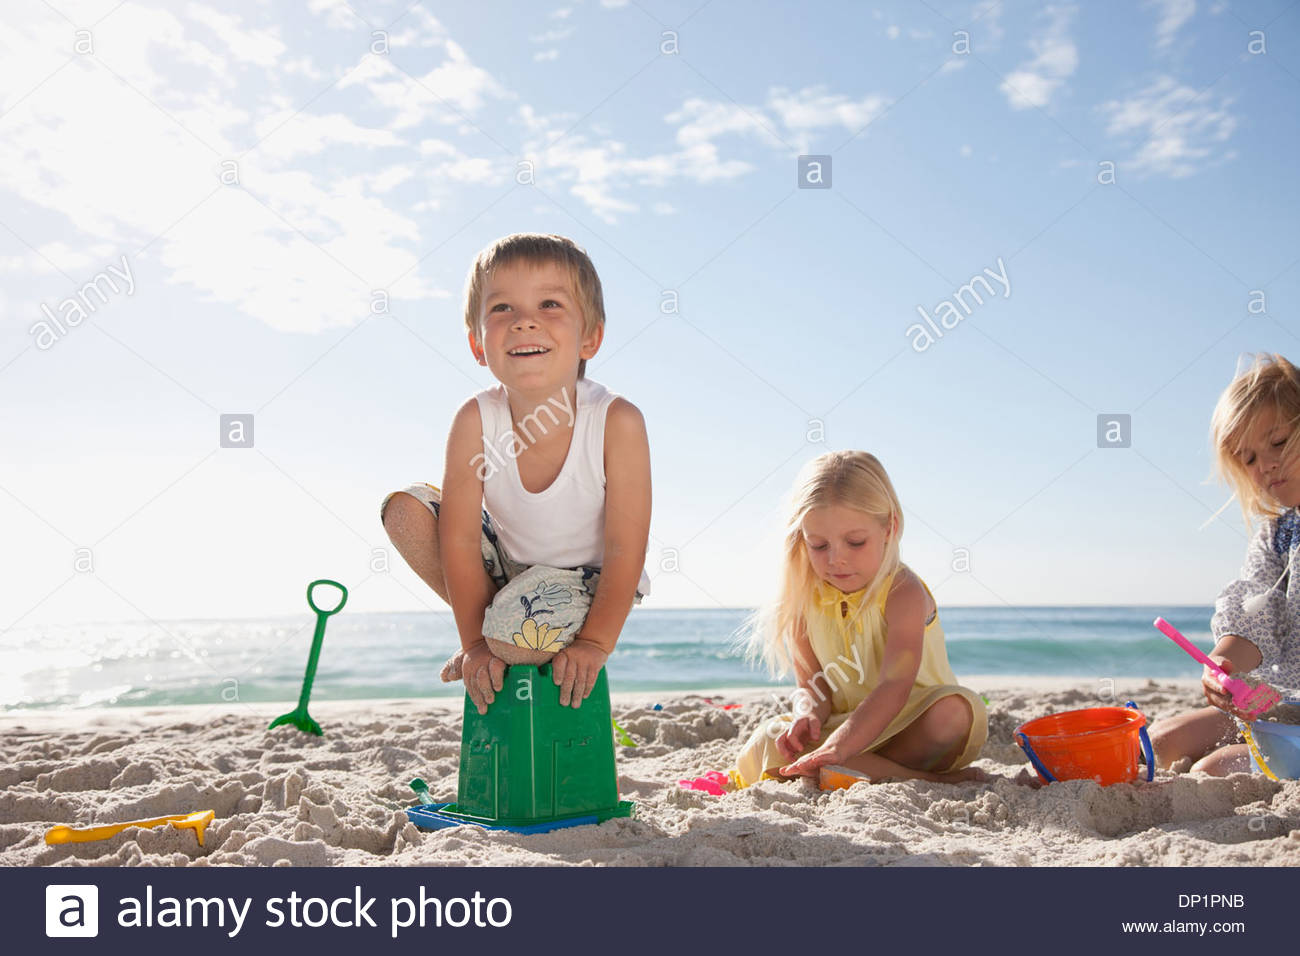 Kids playing on beach - Stock Image